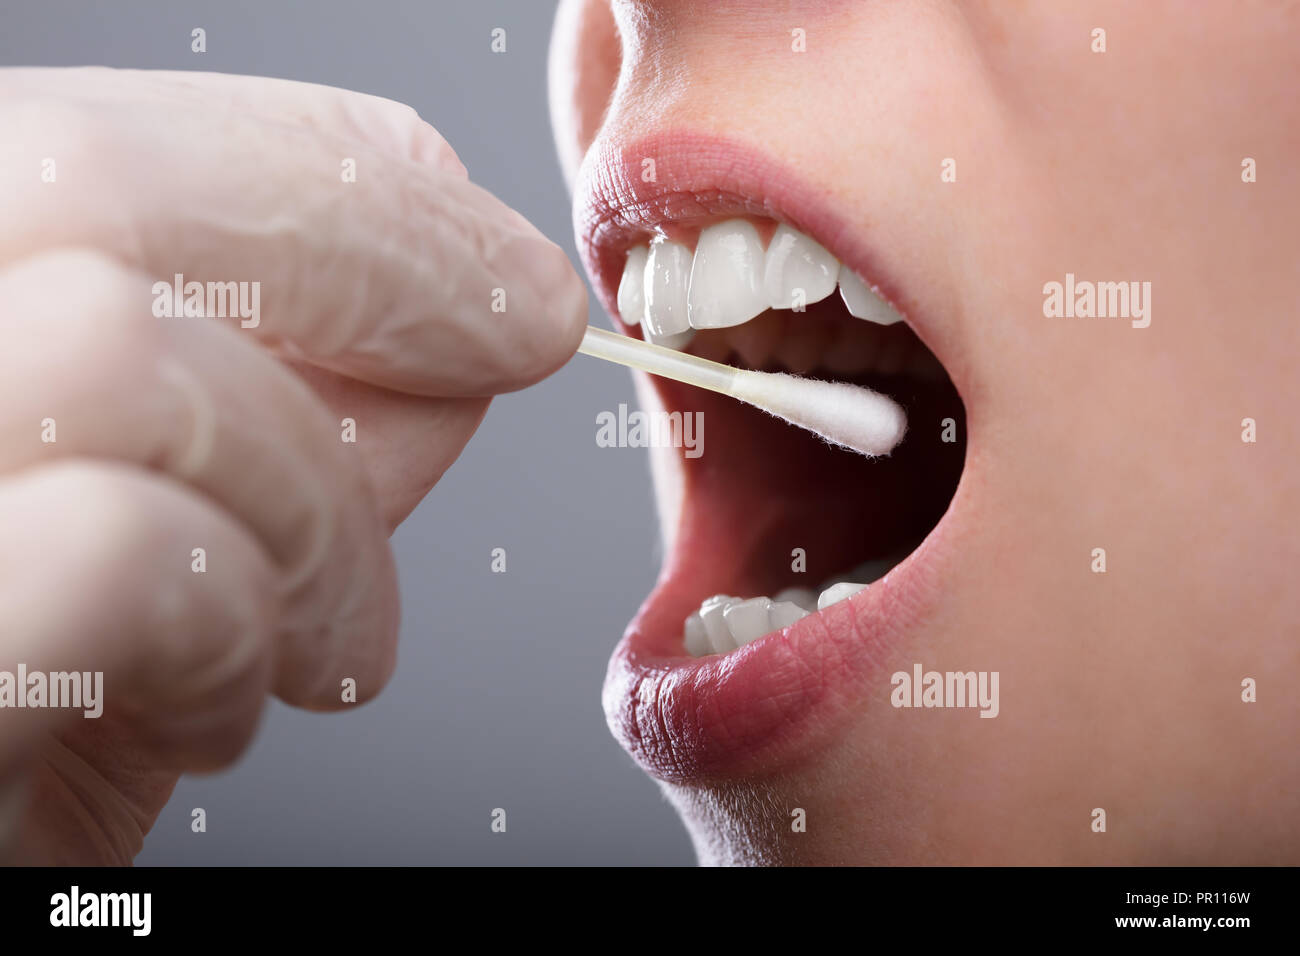 Close-up Of A Woman's Hand Taking Saliva Text From Her Mouth - Stock Image